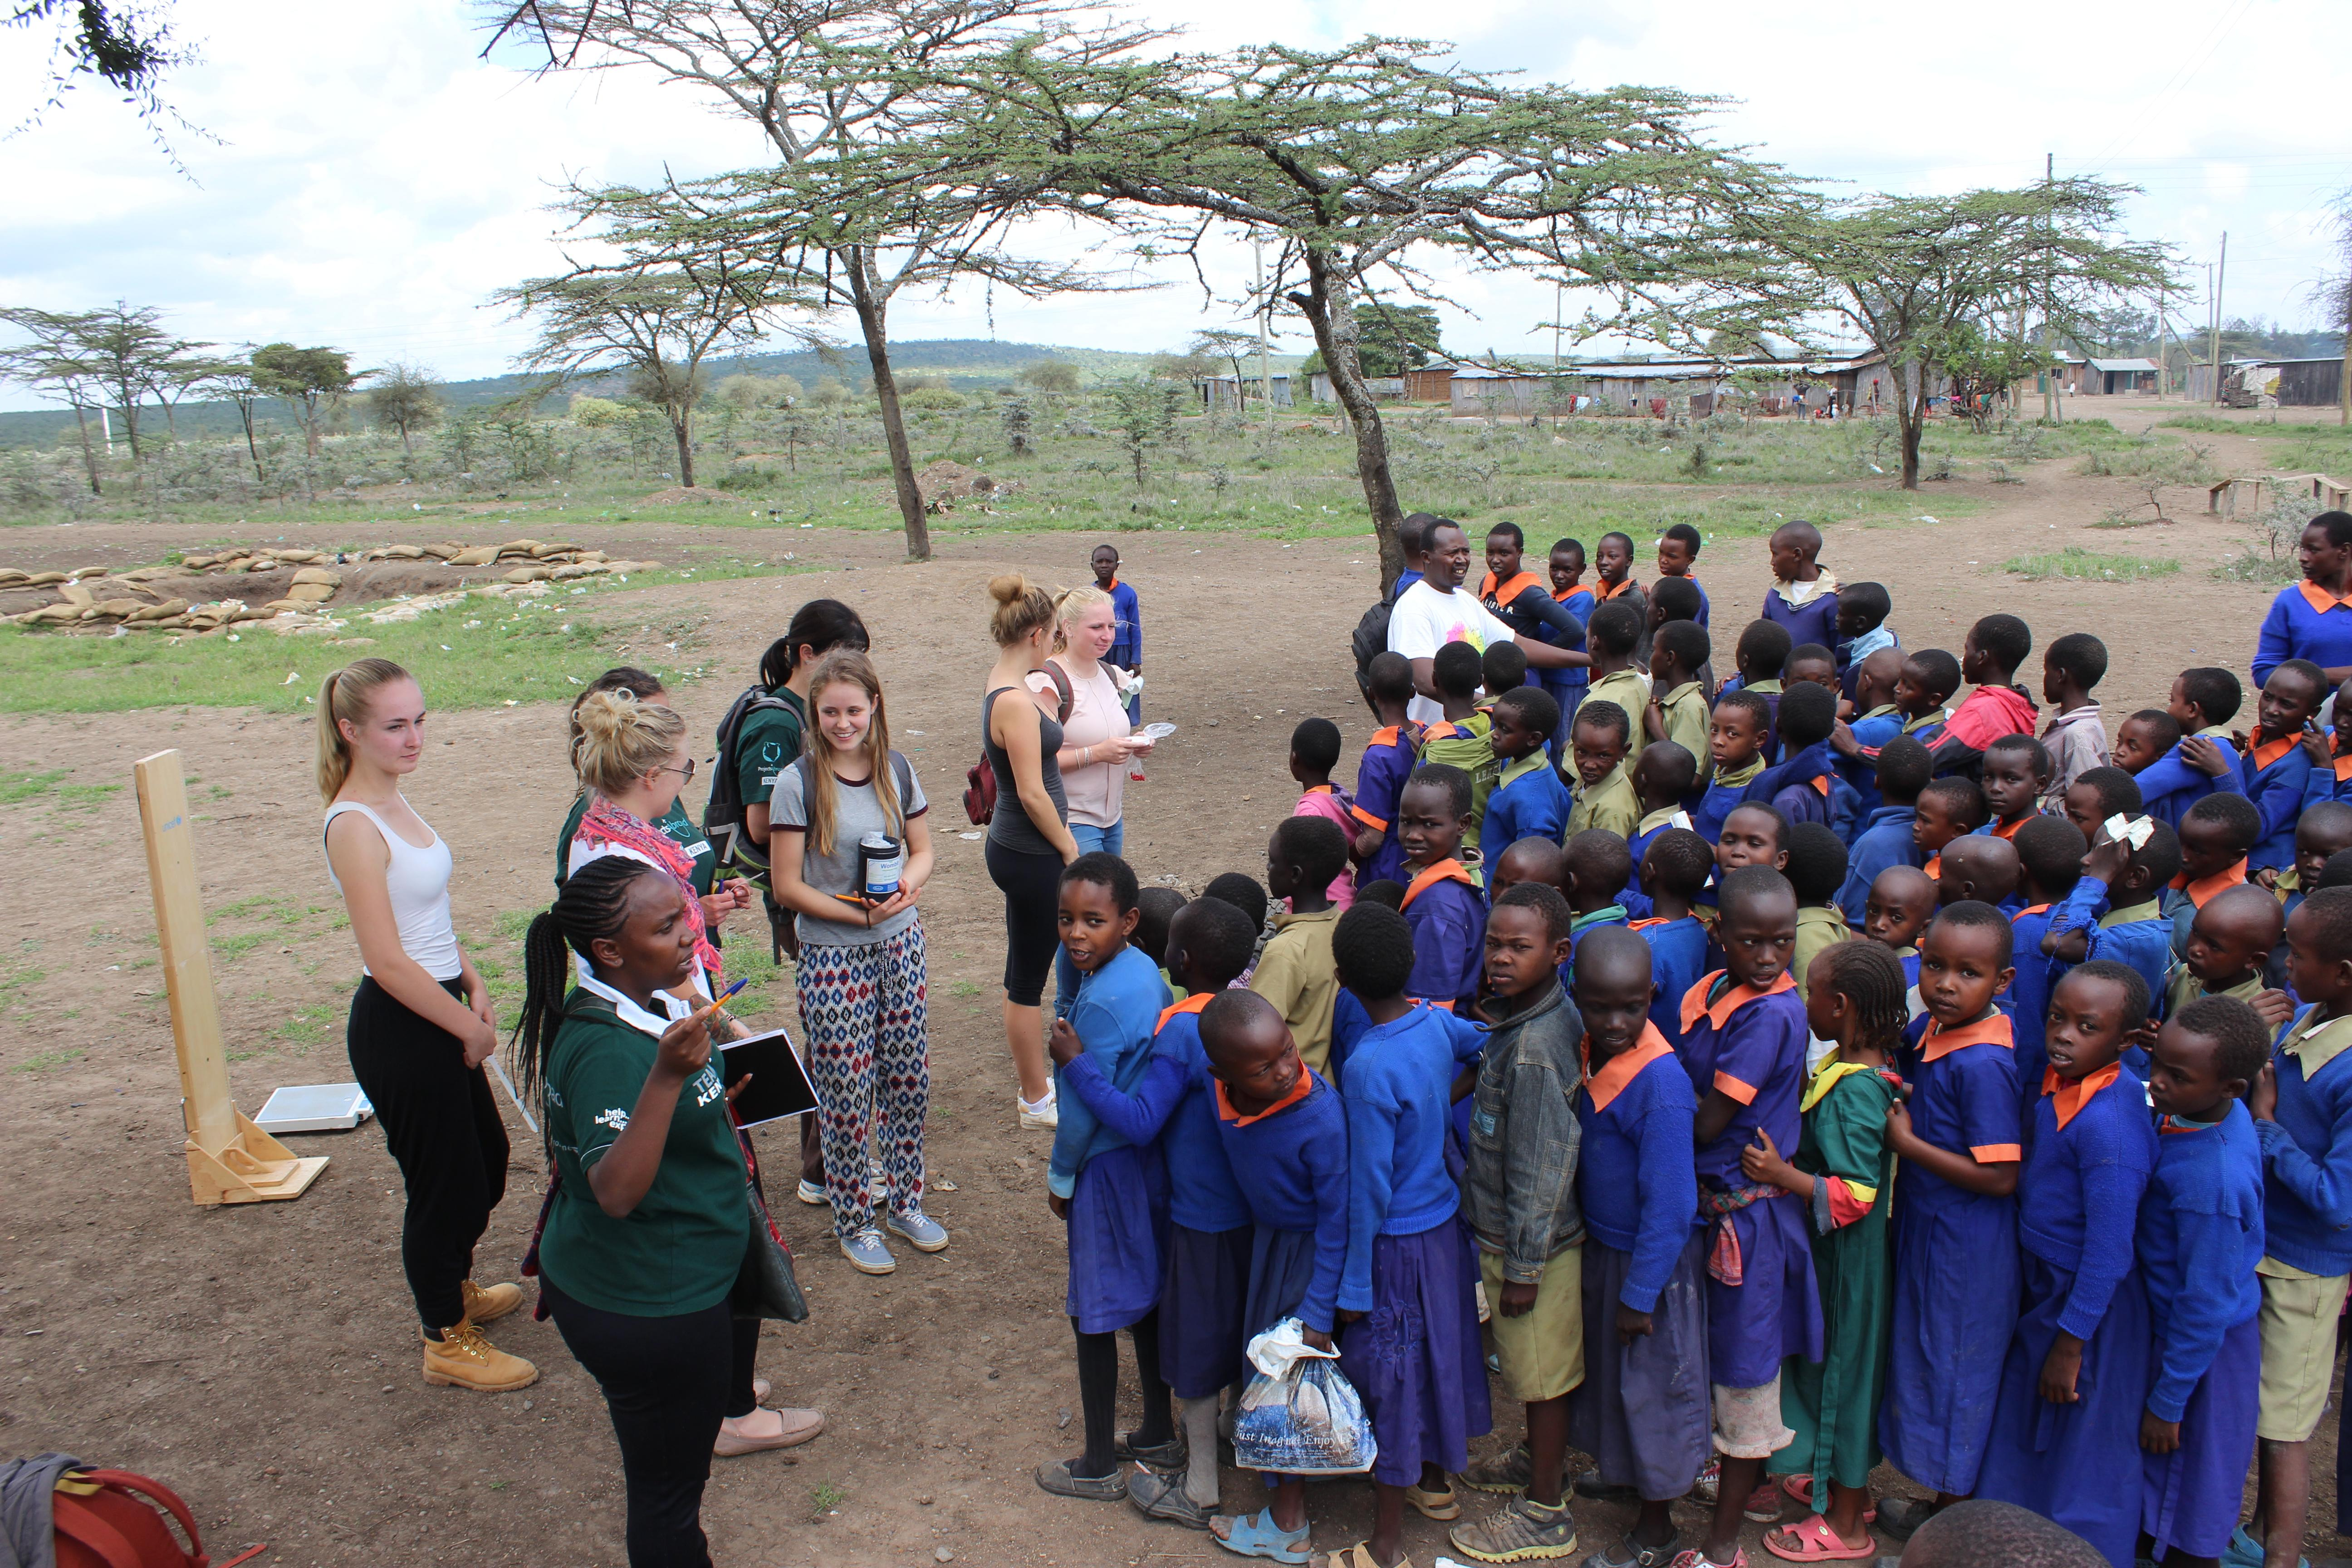 A group of medical Projects Abroad interns preparingto screen and treat local children during their nursing internship in Kenya.